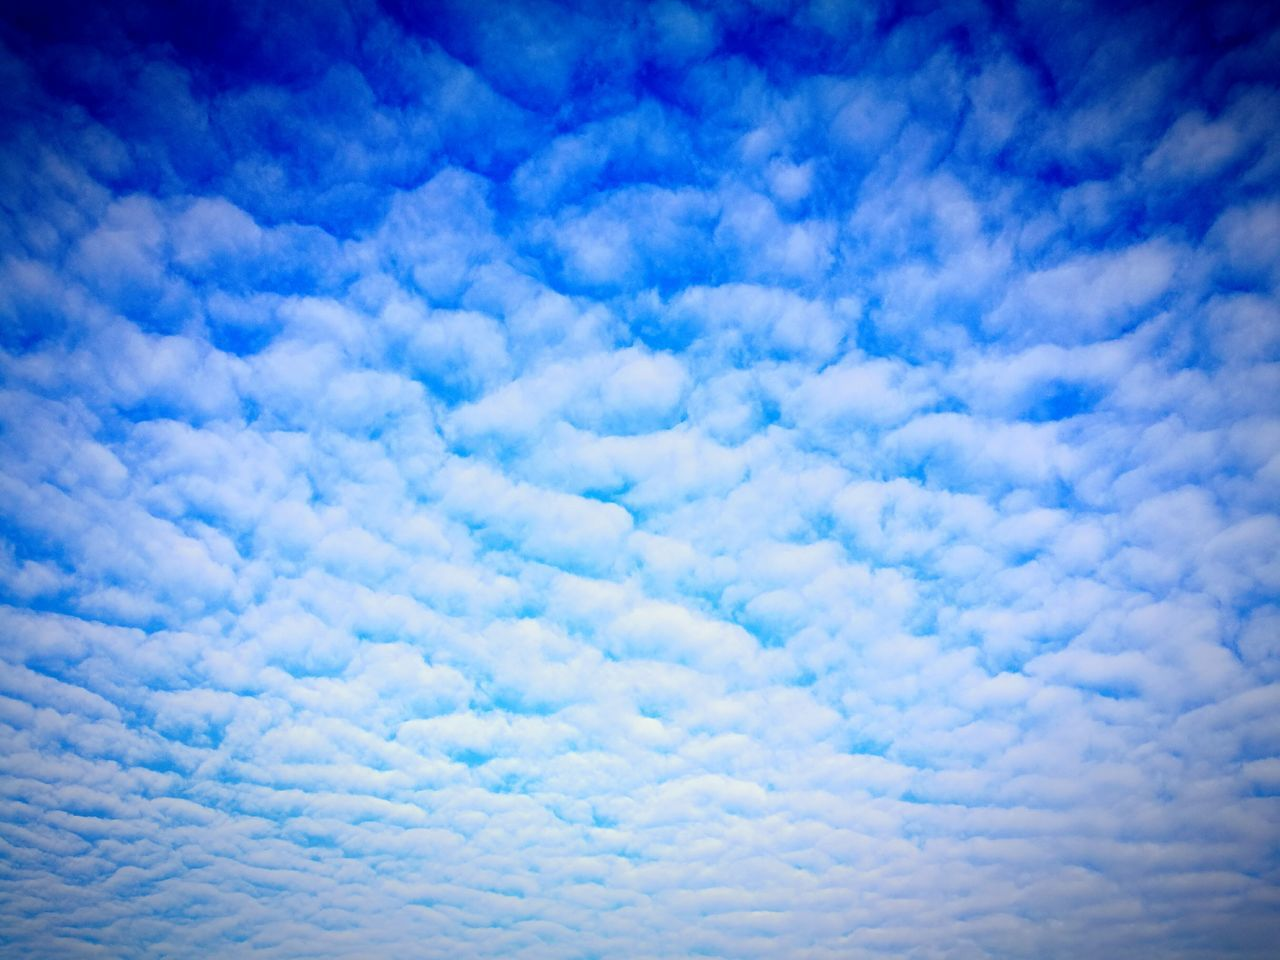 Experimenting with stronger retouches. Backgrounds Blue Sky Nature Cloud - Sky White Color Heaven Fluffy Abstract Cloudscape Cumulus Cloud Textured  Sky Only Beauty In Nature No People Scenics Day Outdoors Like Sand Like Snow Textured  Patterns In Nature Full Frame Beauty In Nature Cloudscape